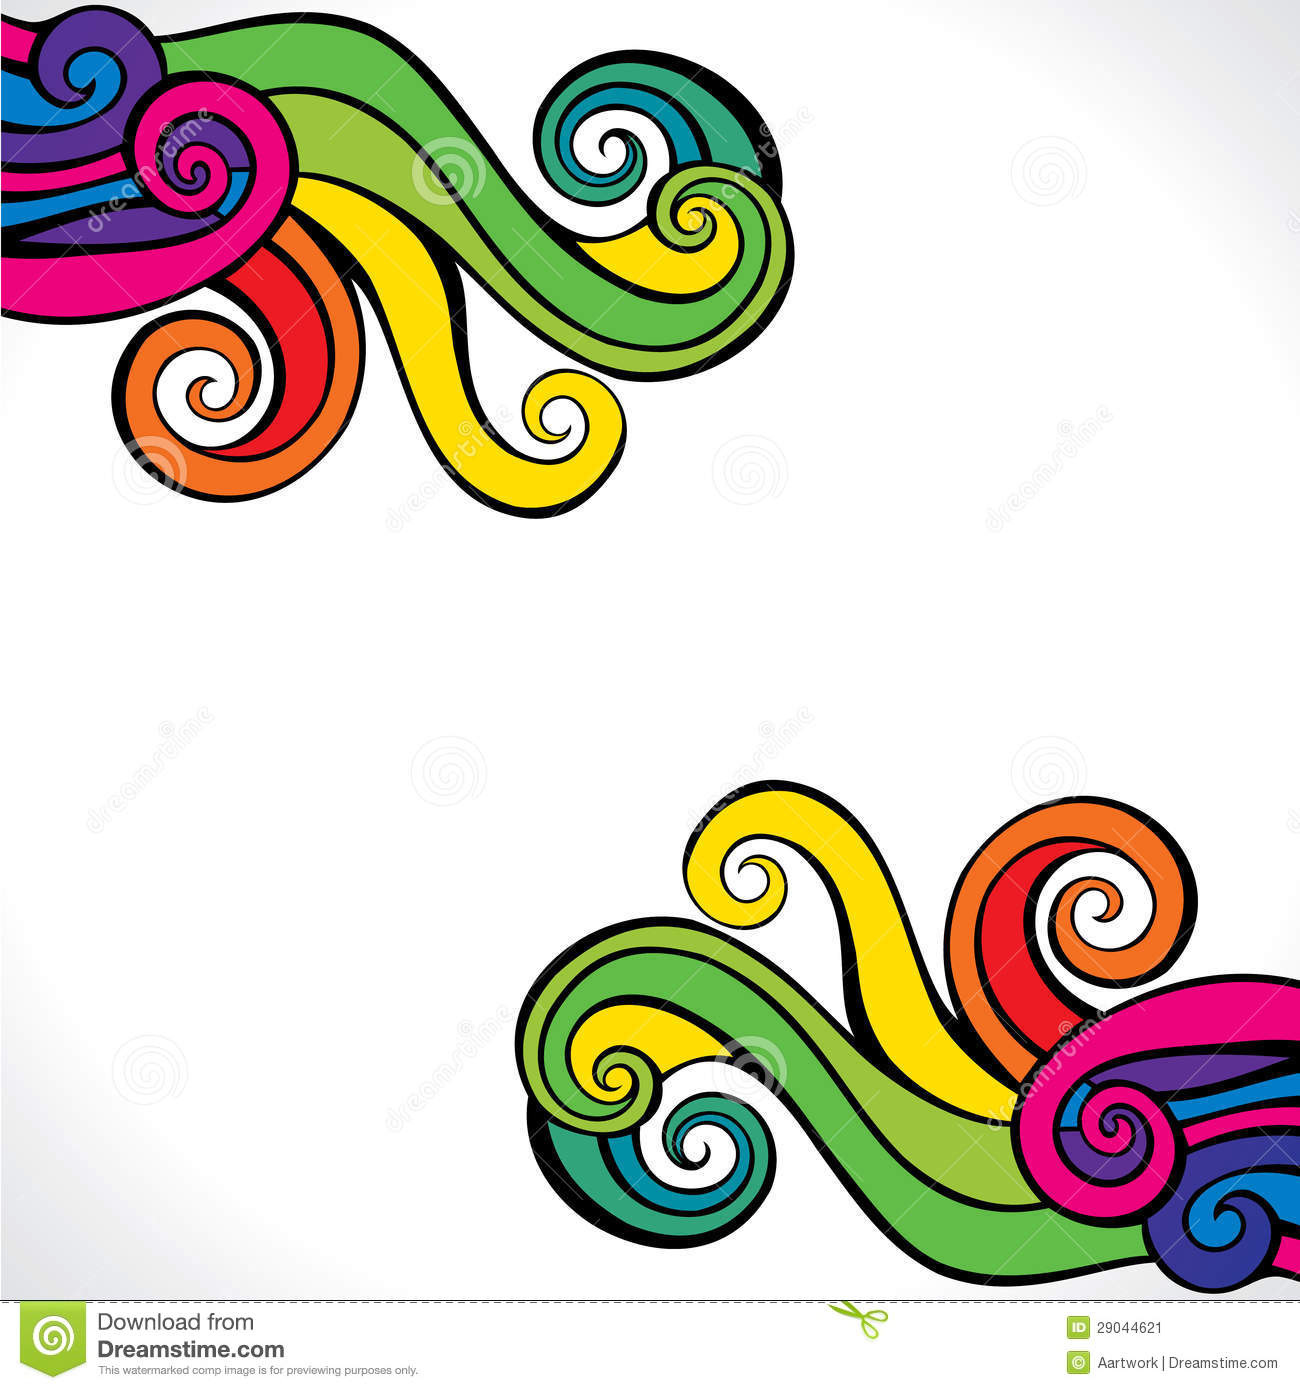 colorful swirl design background stock image image 29044621. Black Bedroom Furniture Sets. Home Design Ideas